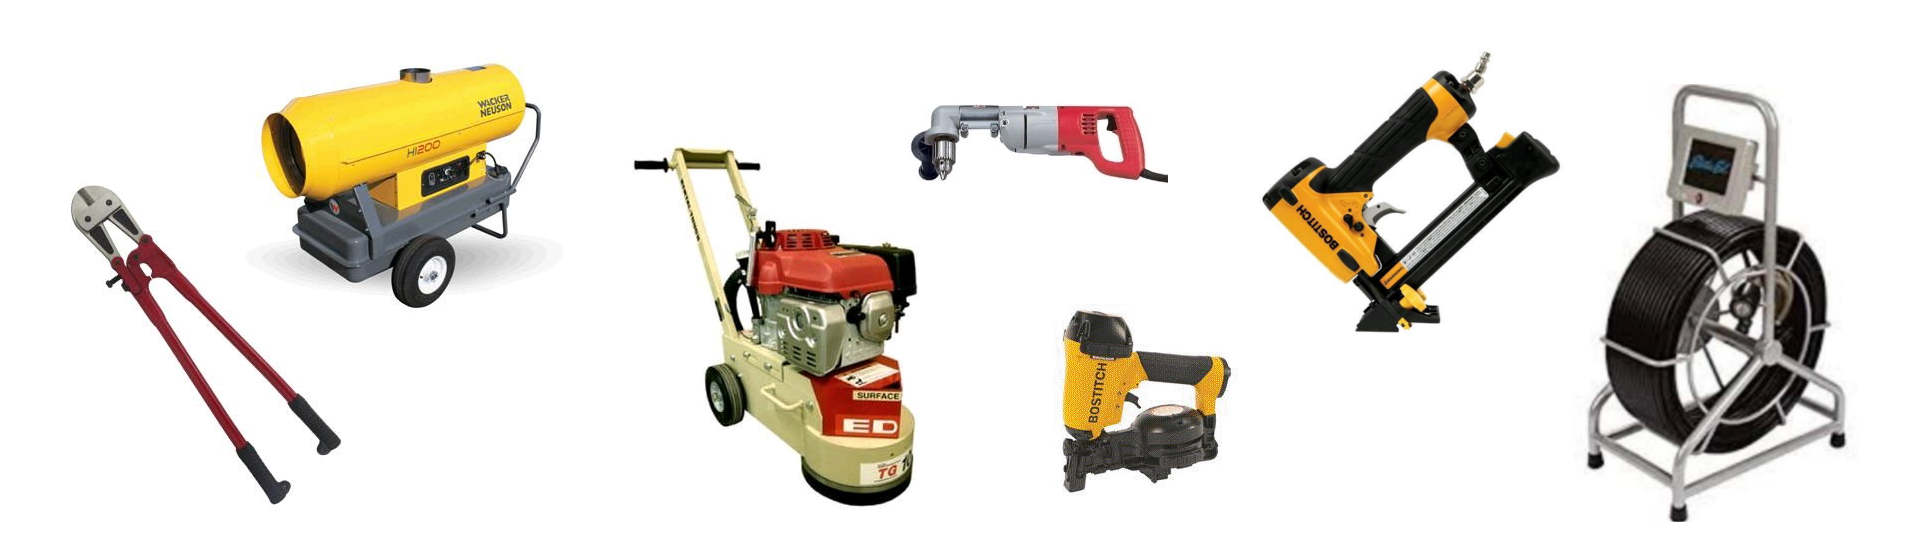 Contractor Equipment Rentals in San Benito County